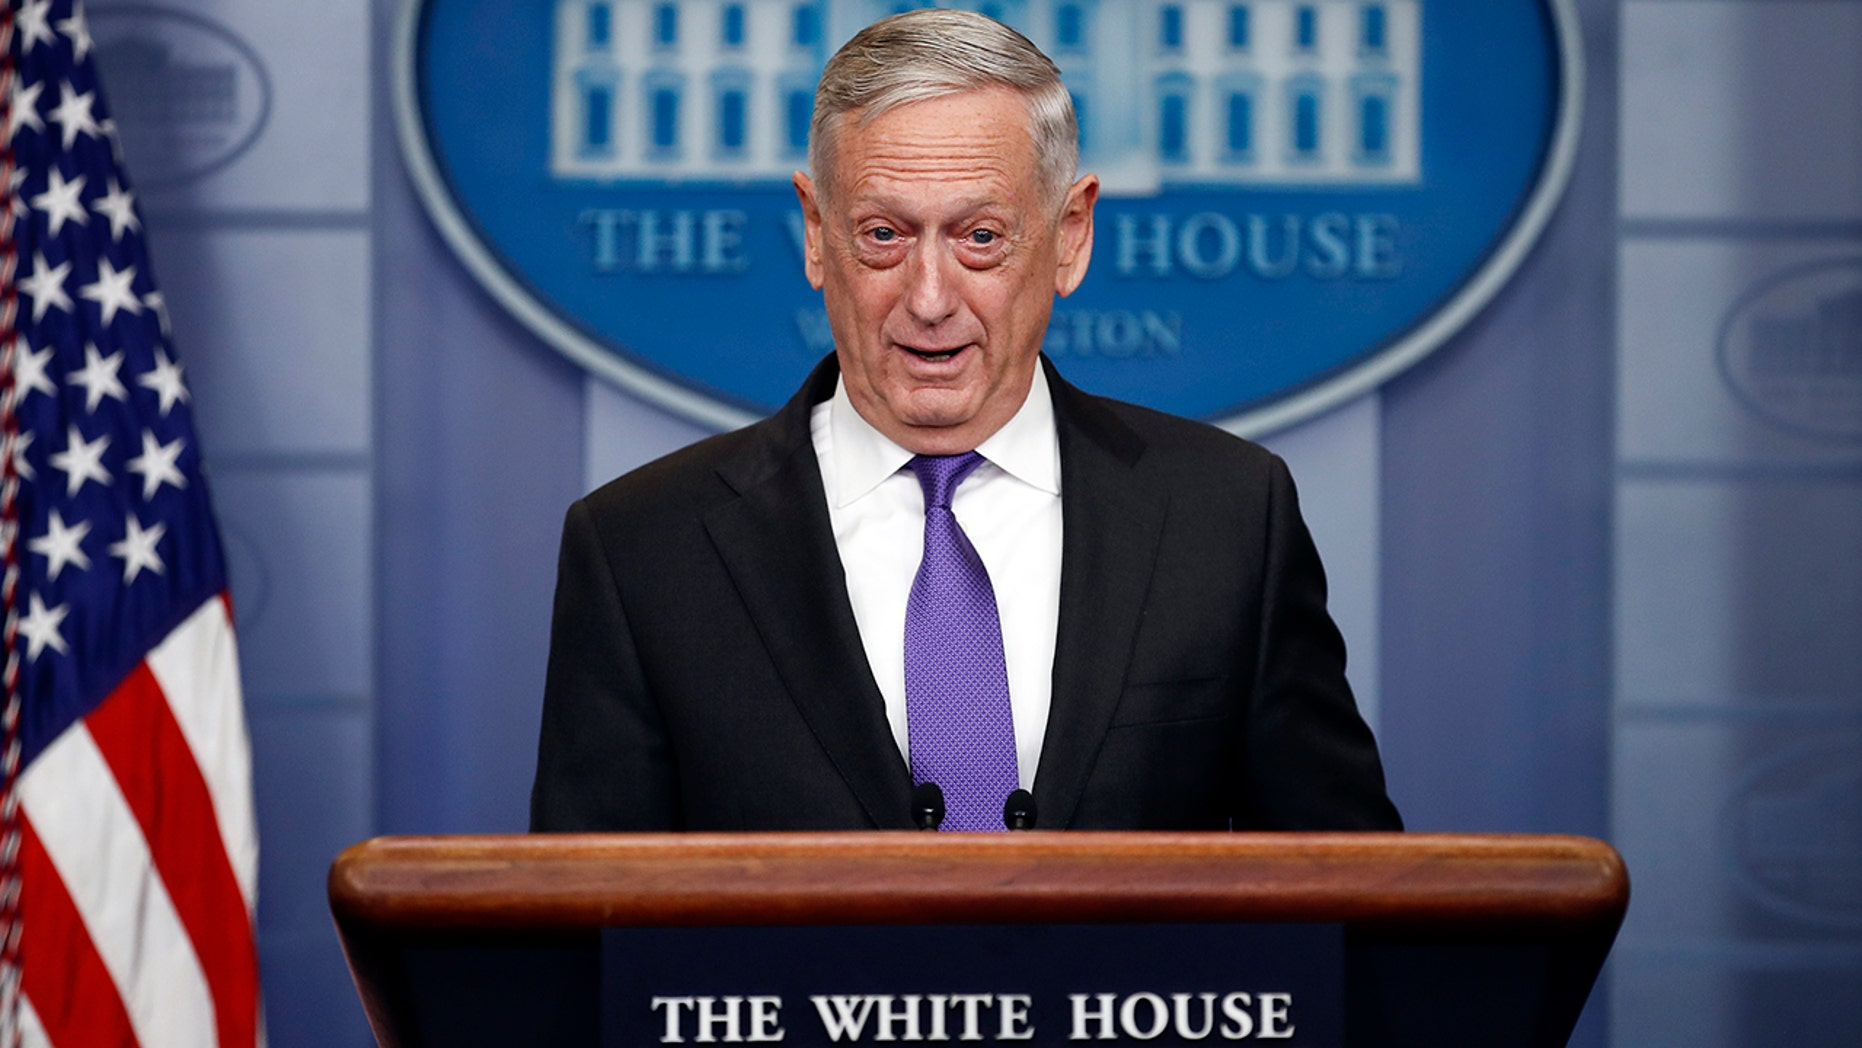 Defense Secretary Jim Mattis speaks during the daily news briefing at the White House, in Washington on Feb. 7. He confirmed that the nearly 850 immigrants currently serving in the military or waiting to start training won't face deportation.